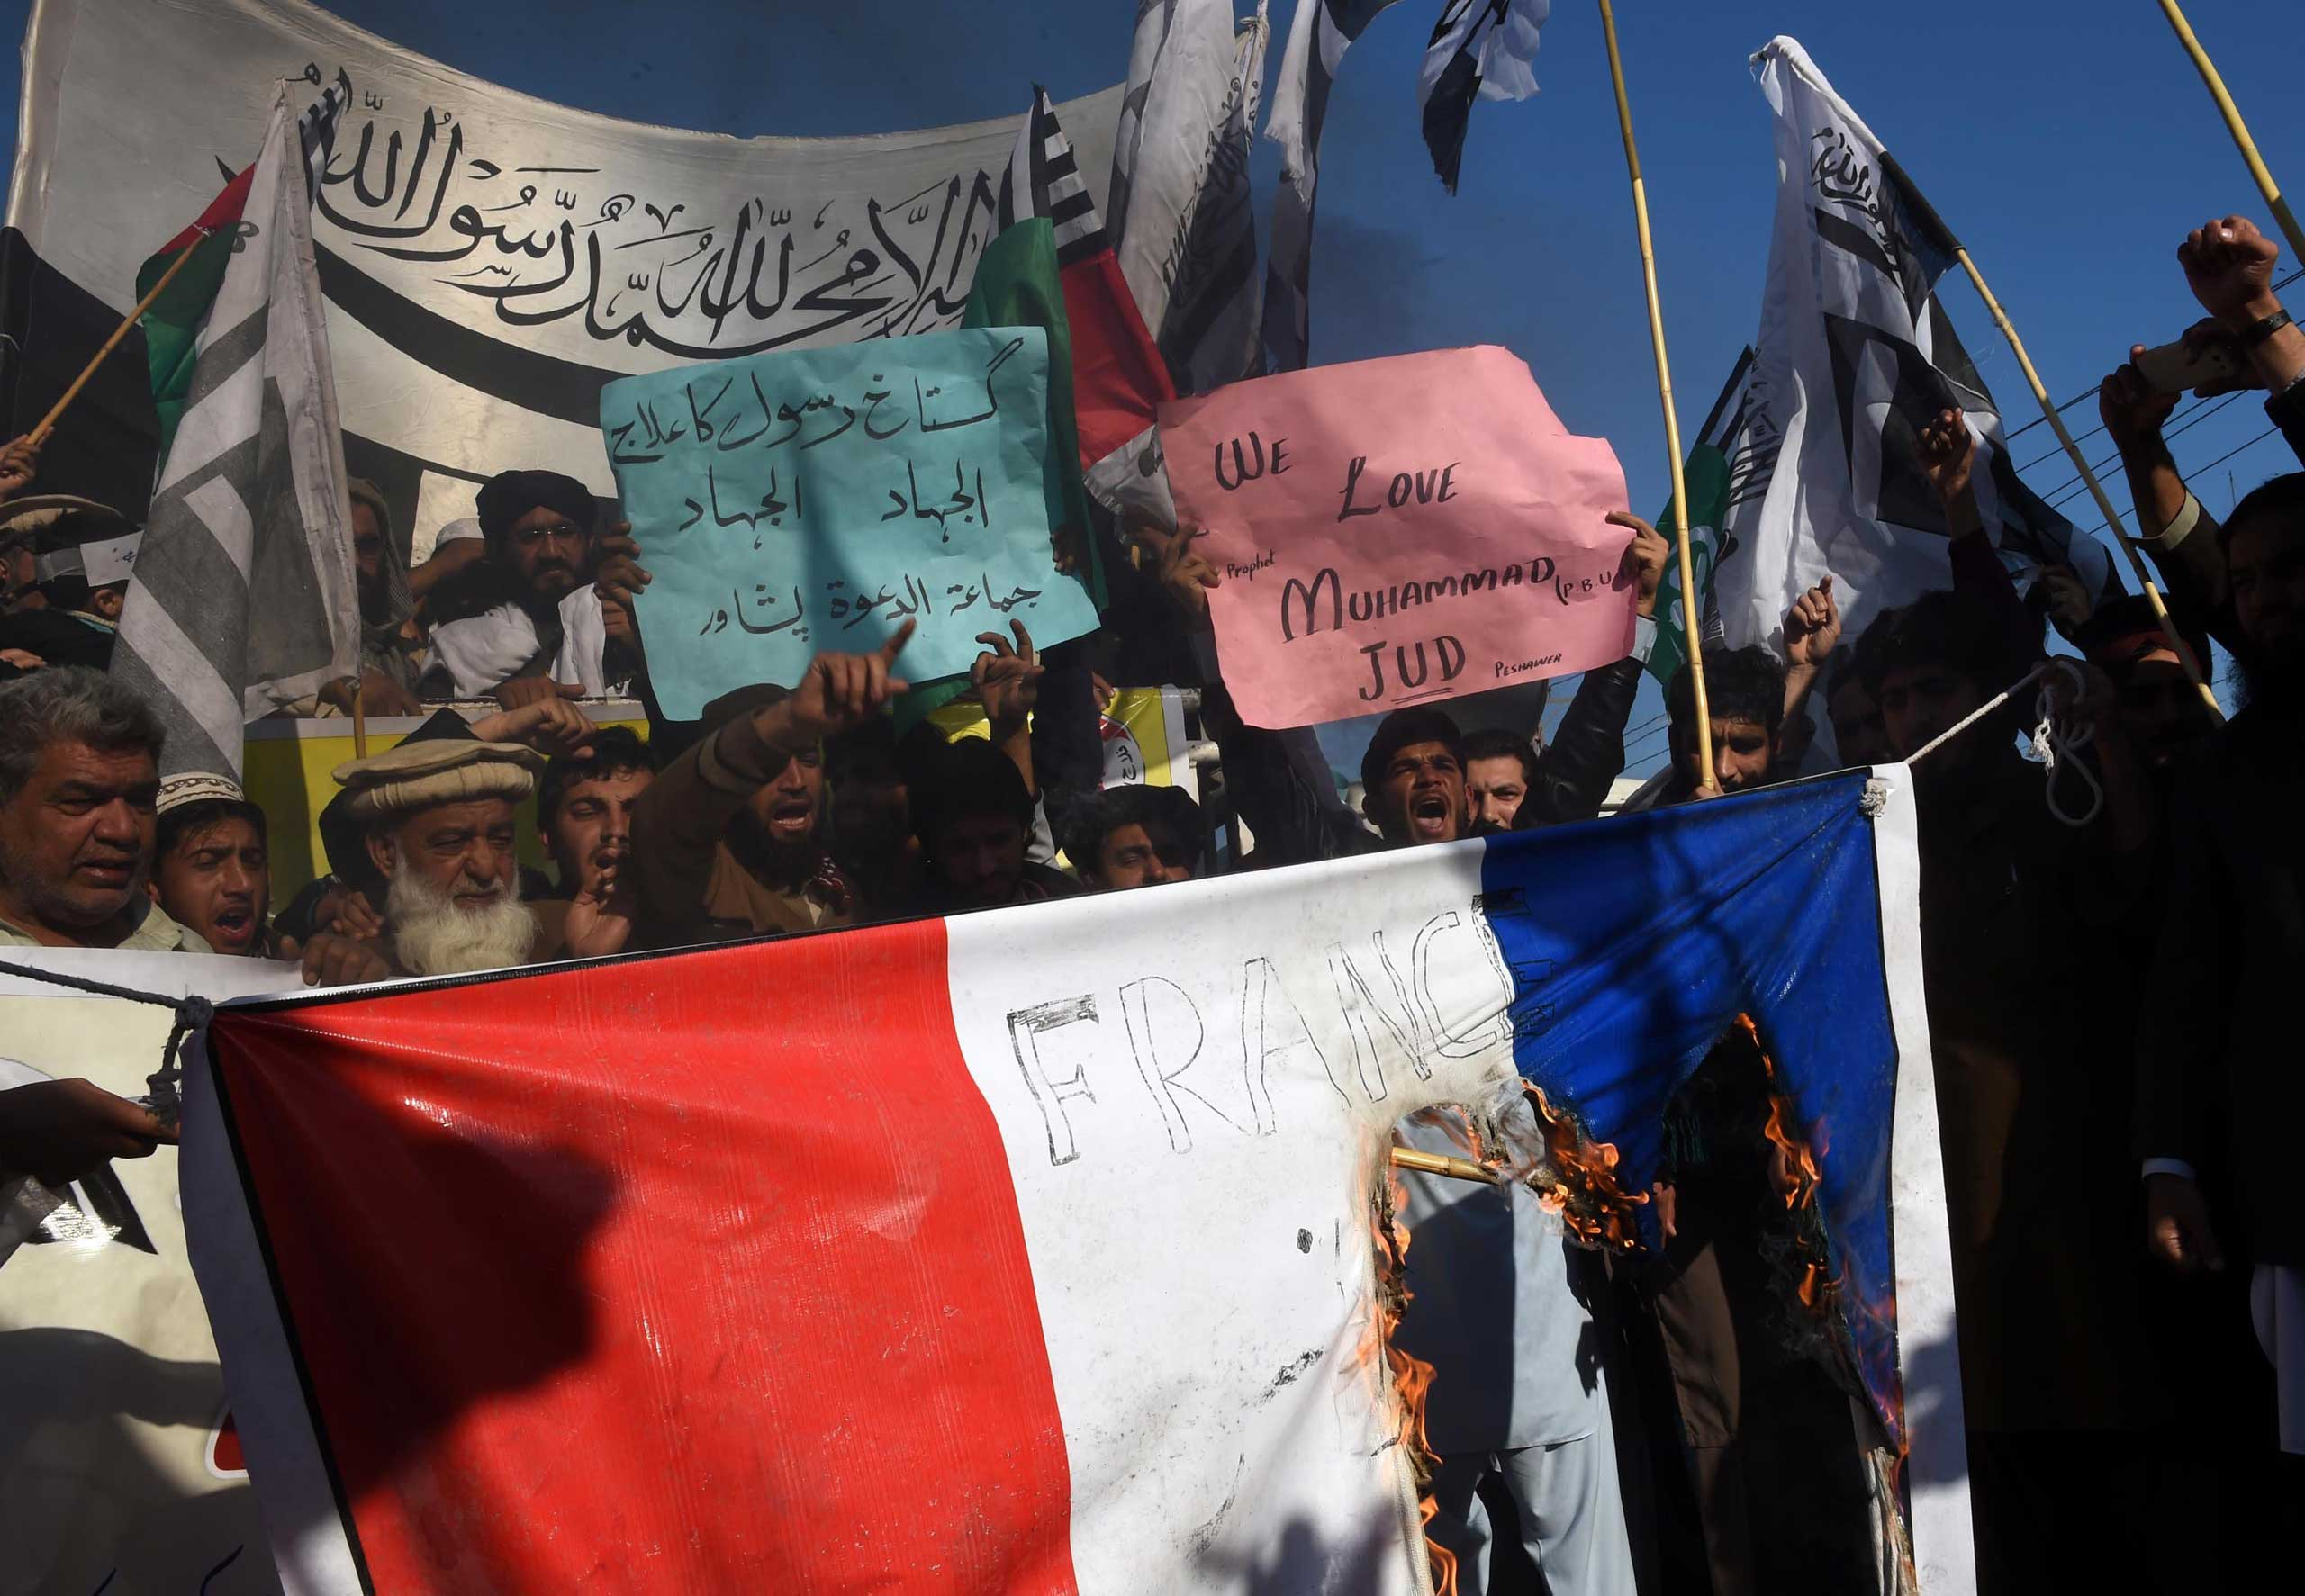 Pakistani protesters burn a French flag during a protest against the printing of satirical sketches of the Prophet Muhammad by French magazine Charlie Hebdo in Peshawar, Pakistan on Jan. 16, 2015.